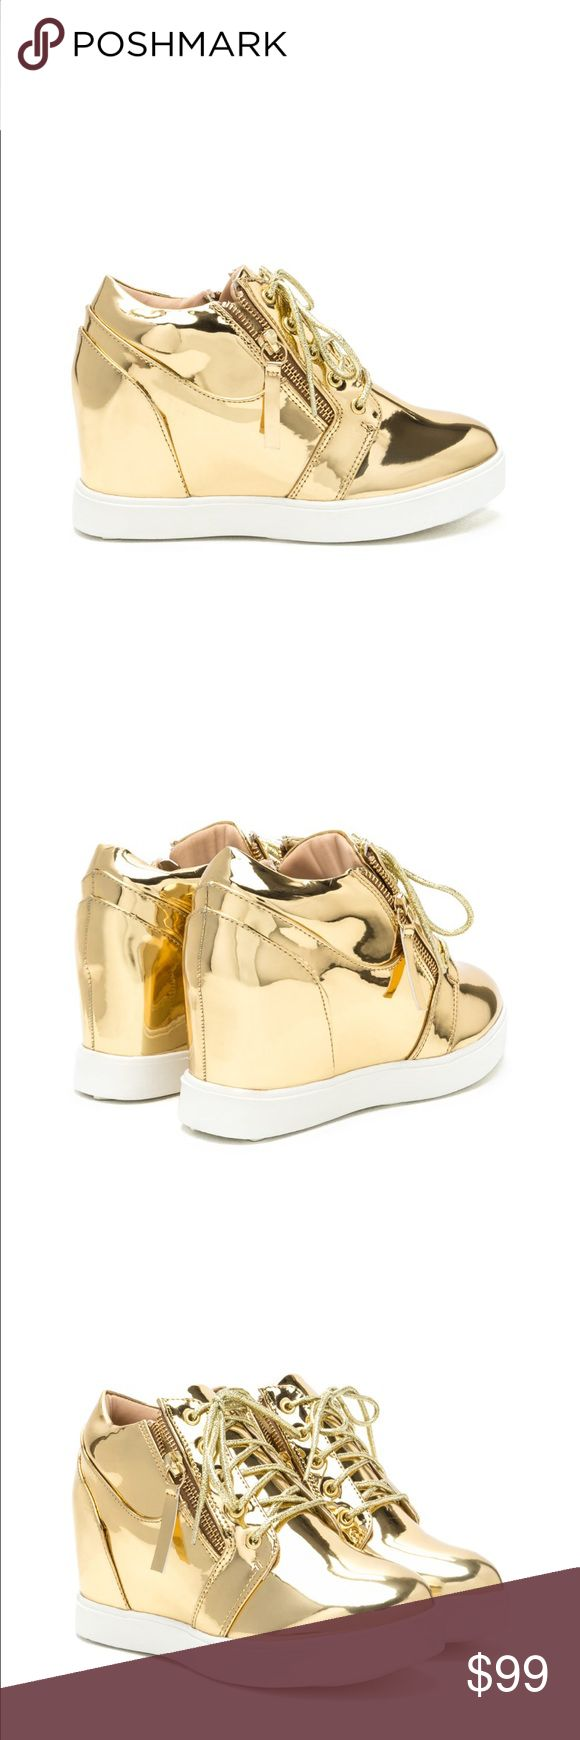 Metallic gold wedge sneaker Metallic gold wedge sneaker. Vegan patent leather wedge. 3 in wedge heel. New in box never worn. Ships within 7 business days. boutique Shoes Sneakers